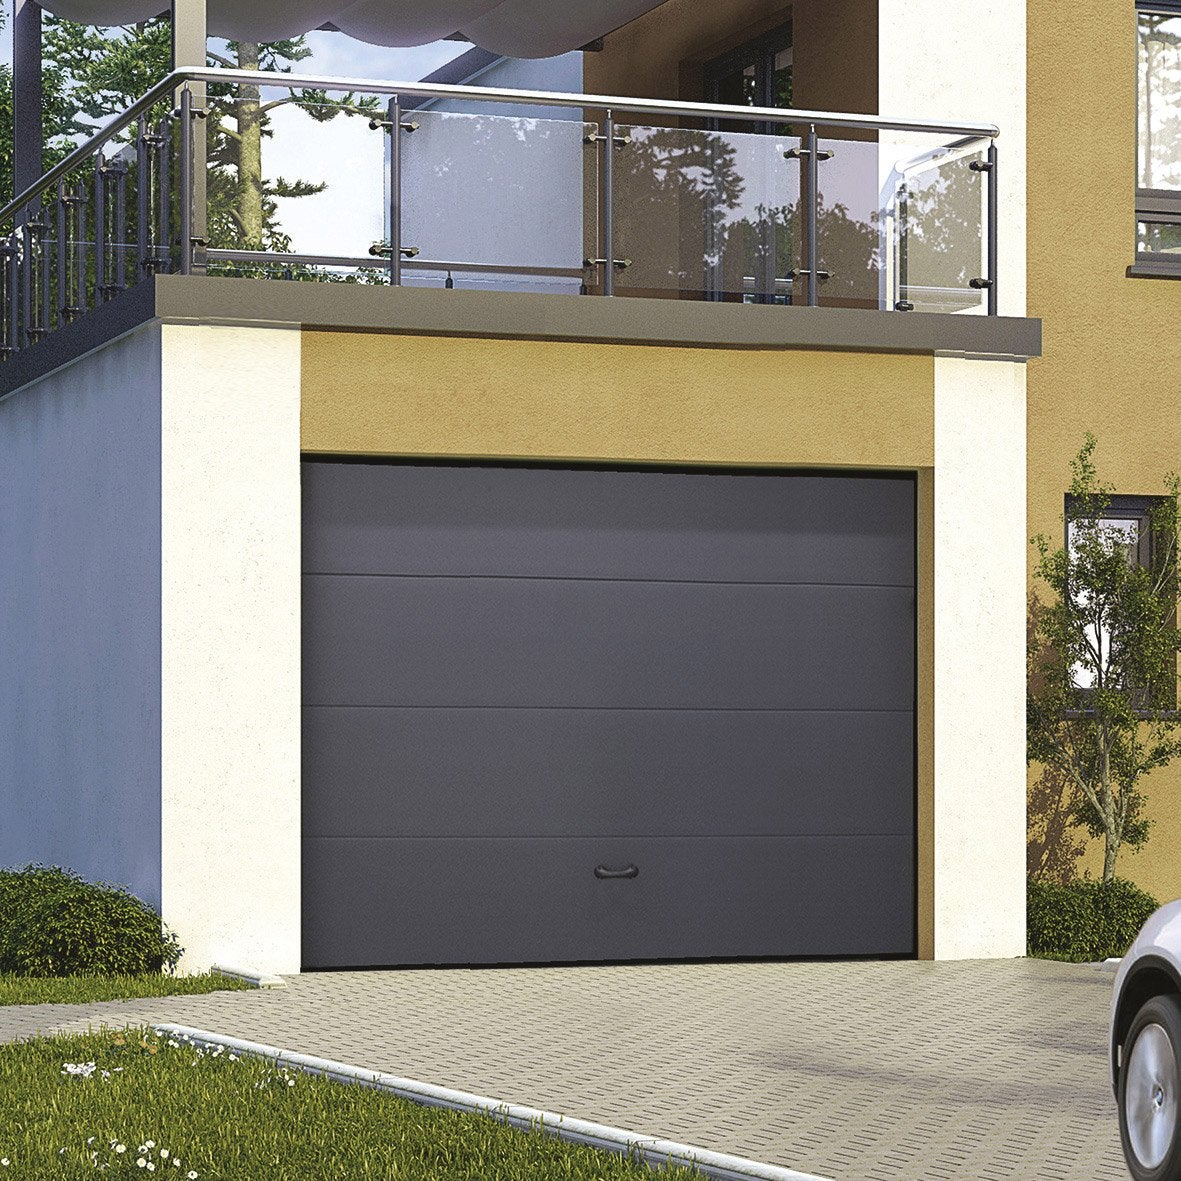 Porte de garage sectionnelle excellence x cm - Leroy merlin porte garage sectionnelle ...